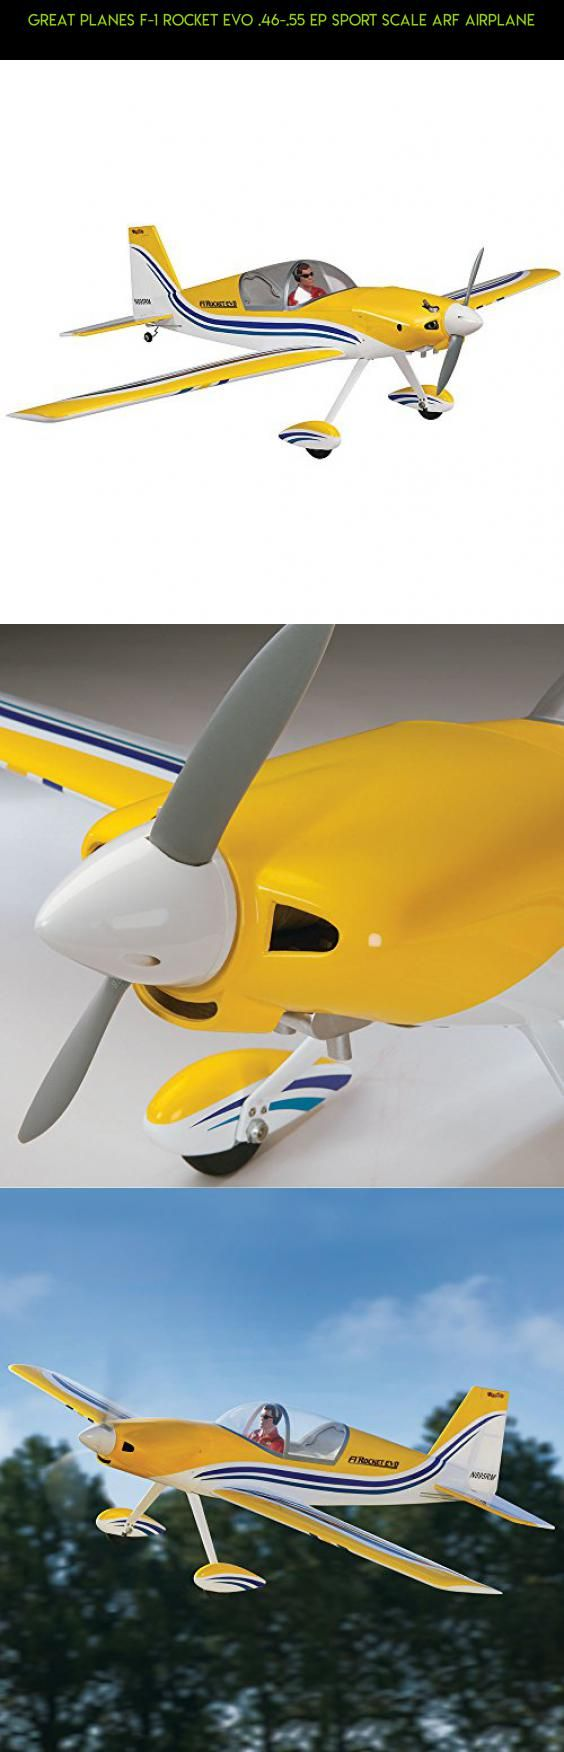 Great Planes F-1 Rocket Evo .46-.55 EP Sport Scale ARF Airplane #planes #drone #technology #arf #racing #plans #fpv #products #gadgets #parts #great #camera #kit #tech #shopping